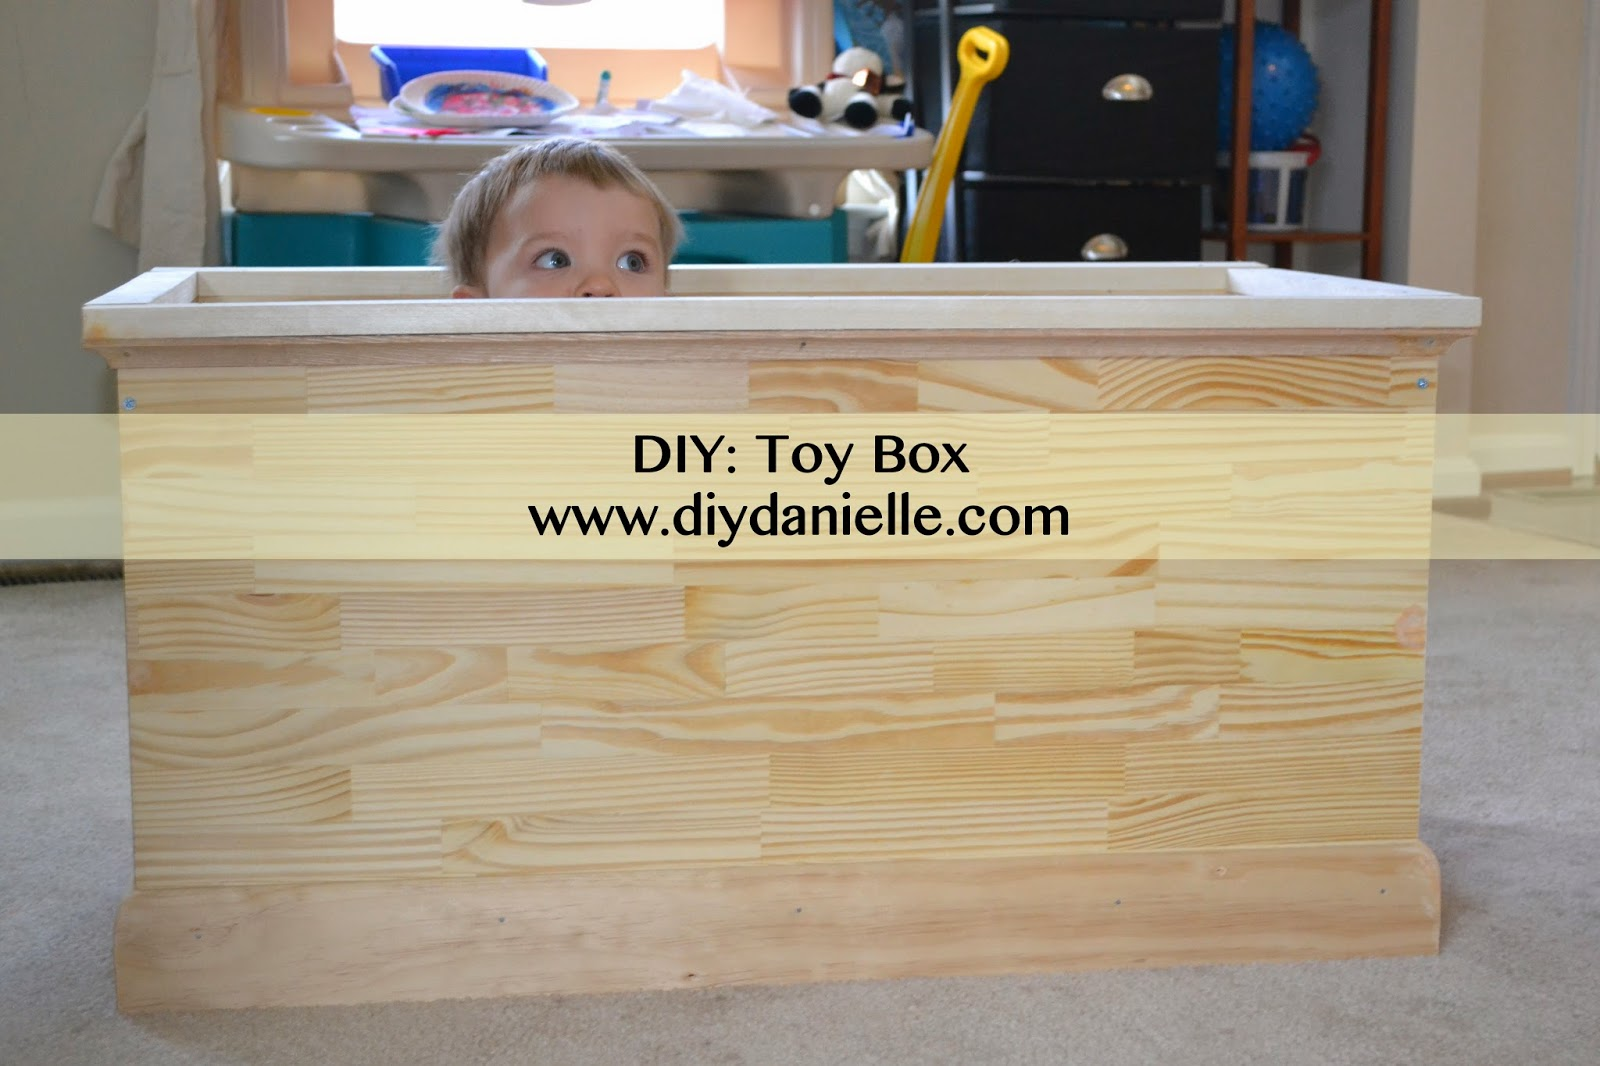 Toy Box | DIY Danielle